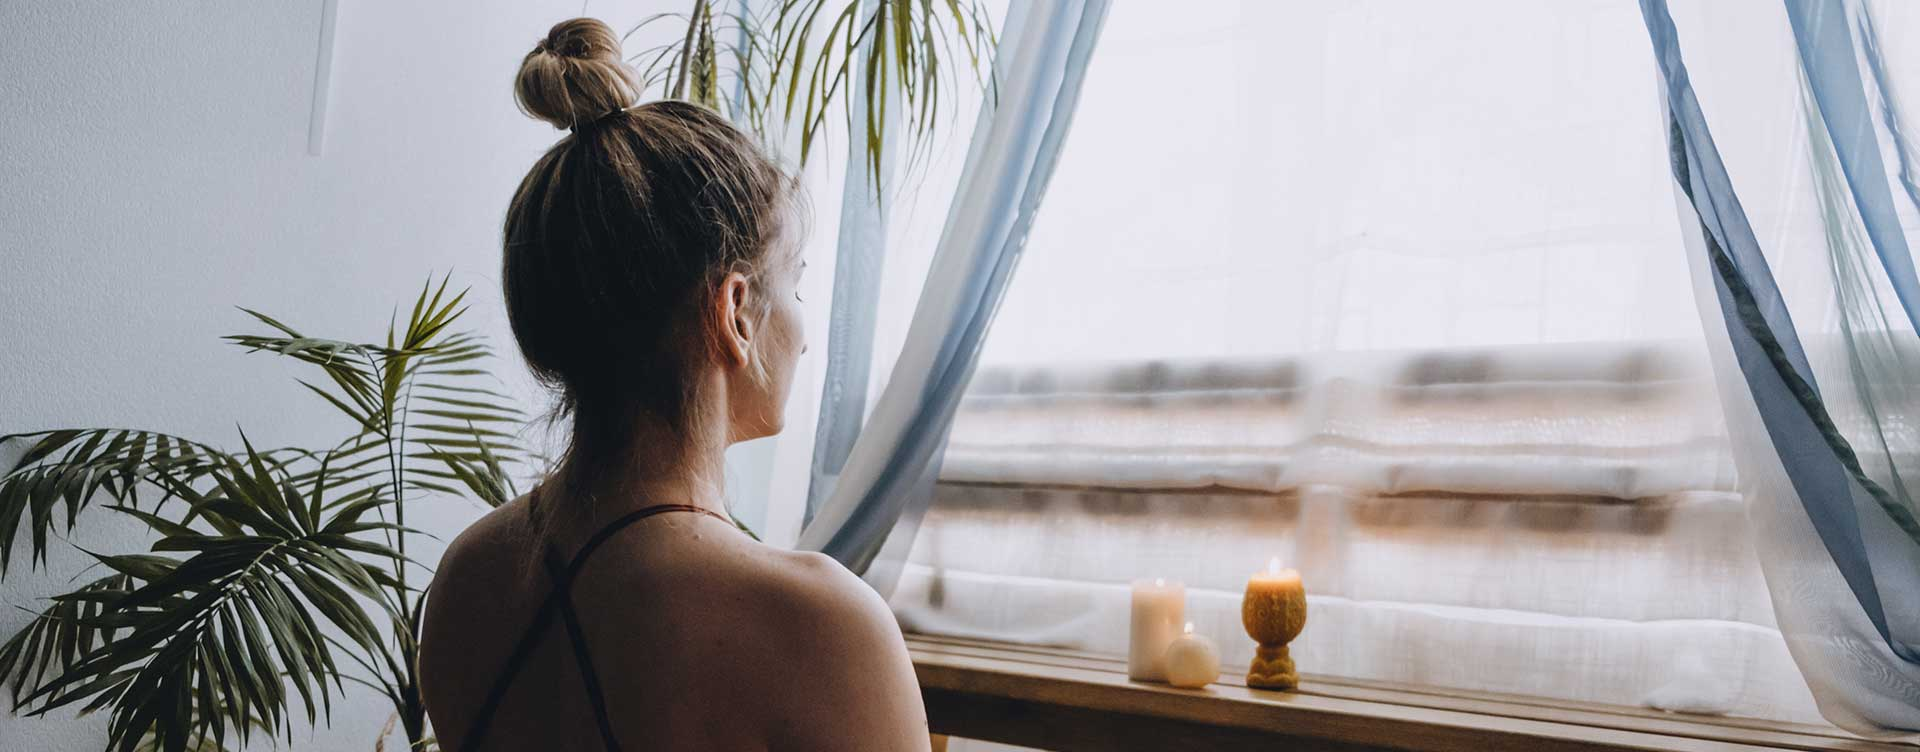 Woman meditating on the floor in front of a window with natural light and candles.